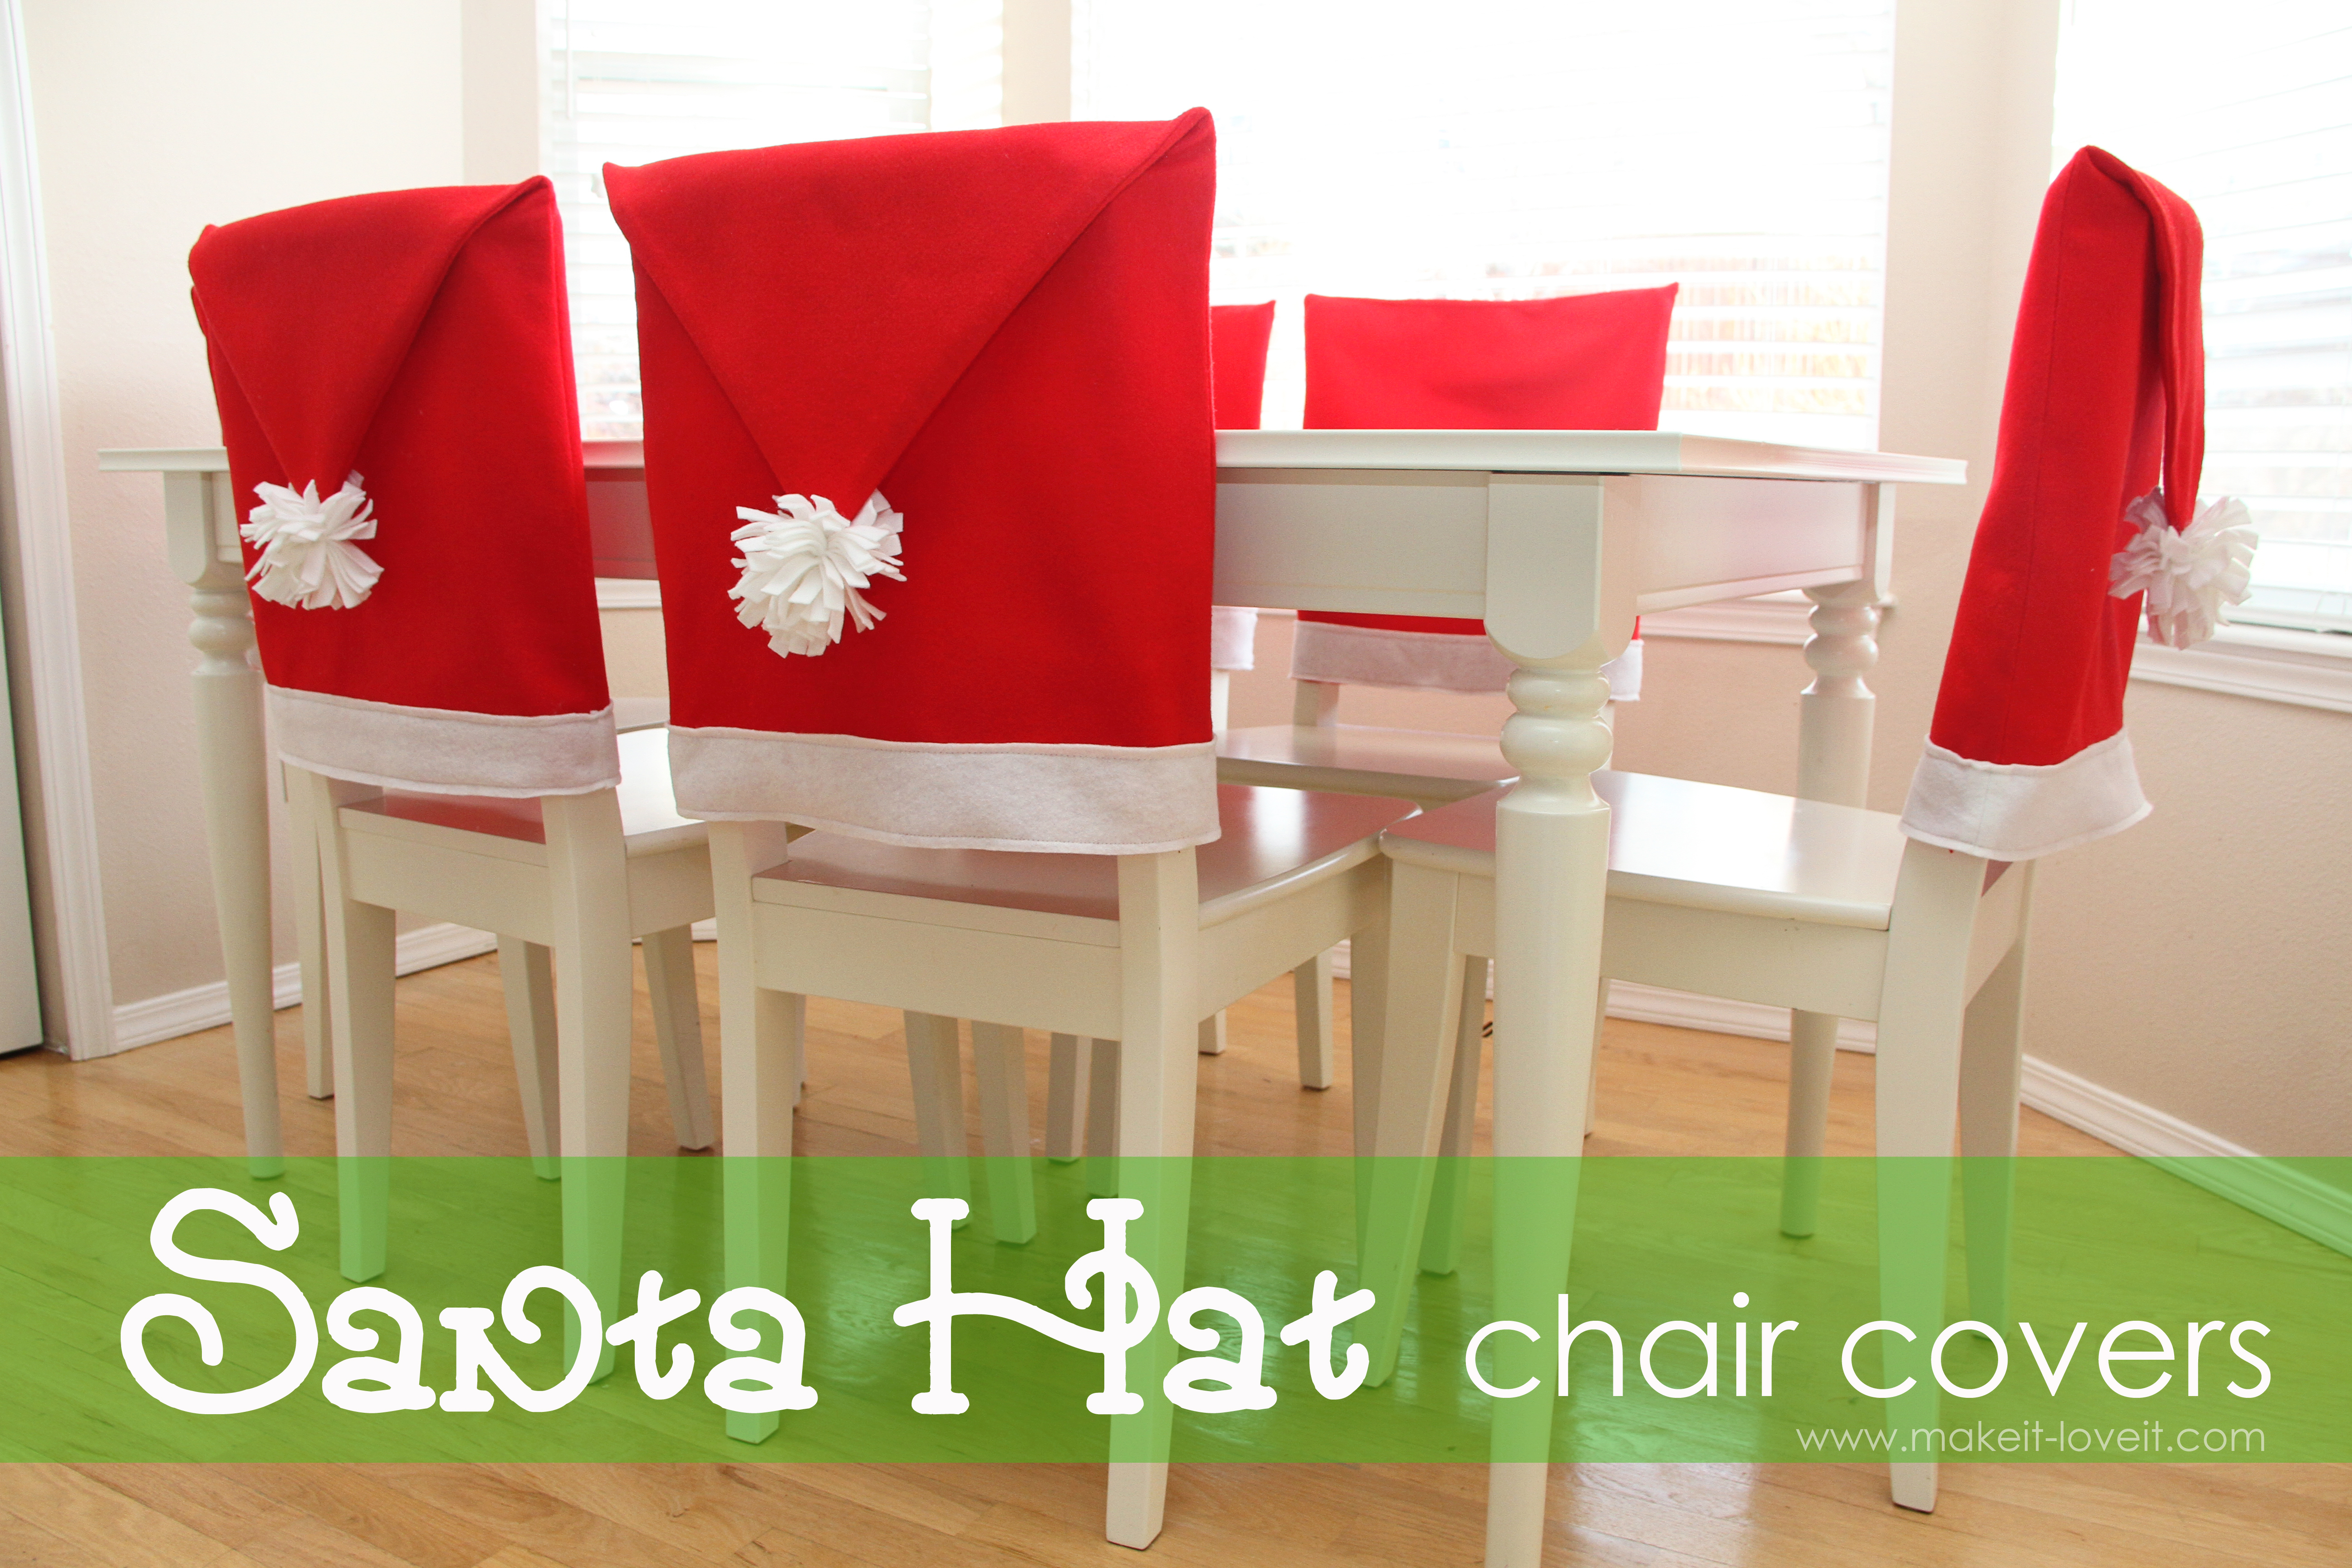 Santa Hat Chair Covers a serious Bah Humbug repellent